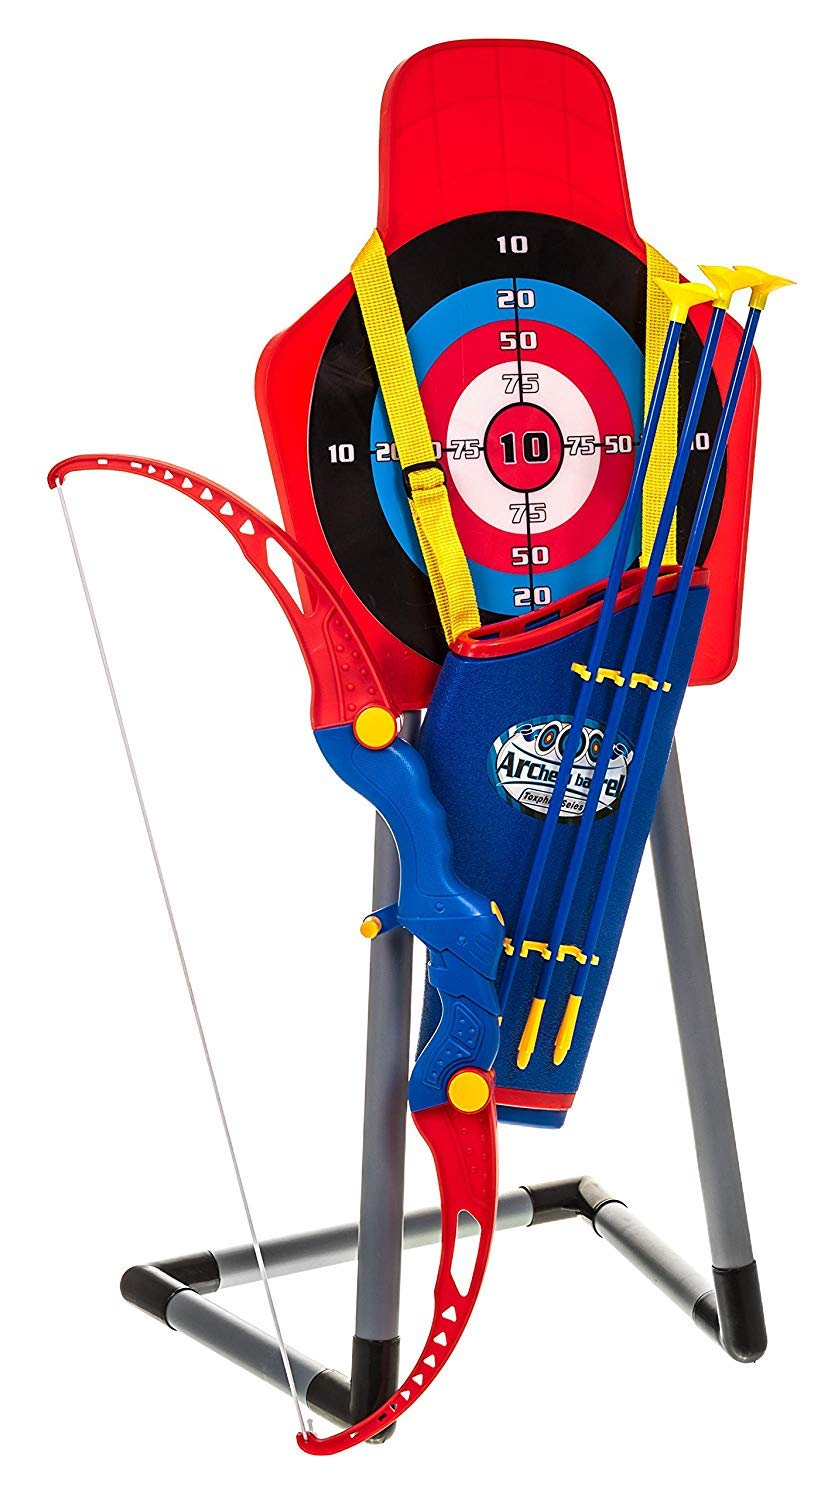 Fineway Kids Toy Boy Archery Set With Arrow Holder With Target Stand Indoor Outdoor Garden Fun Game Buy Online In Faroe Islands At Desertcart Productid 71914568 You'll receive email and feed alerts when new items arrive. desertcart